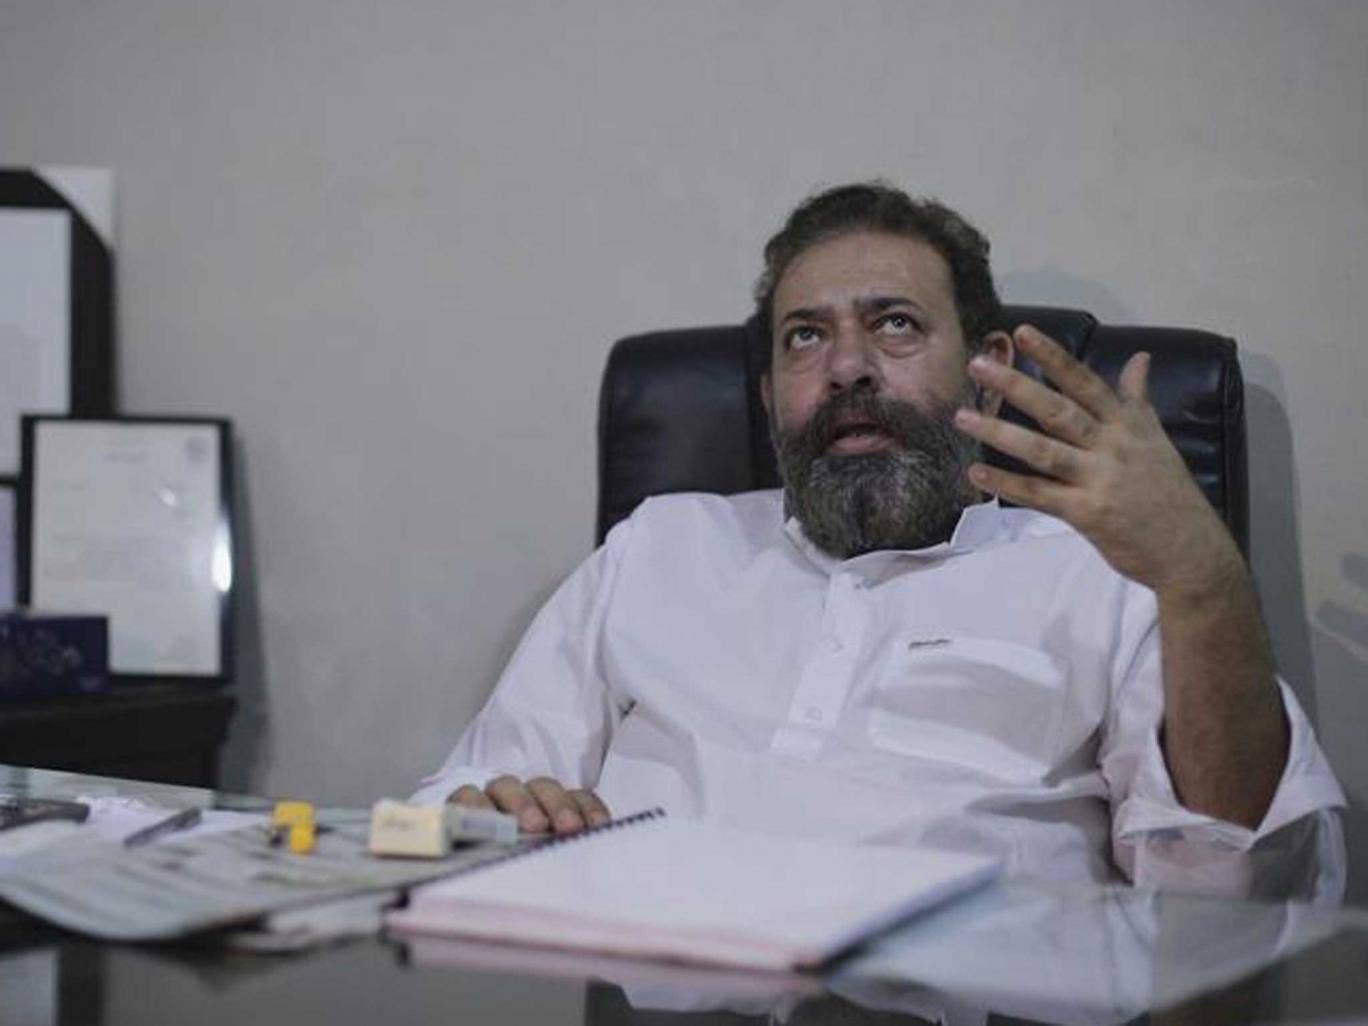 Chaudhry Aslam Khan was renowned for taking on the bad guys in Karachi